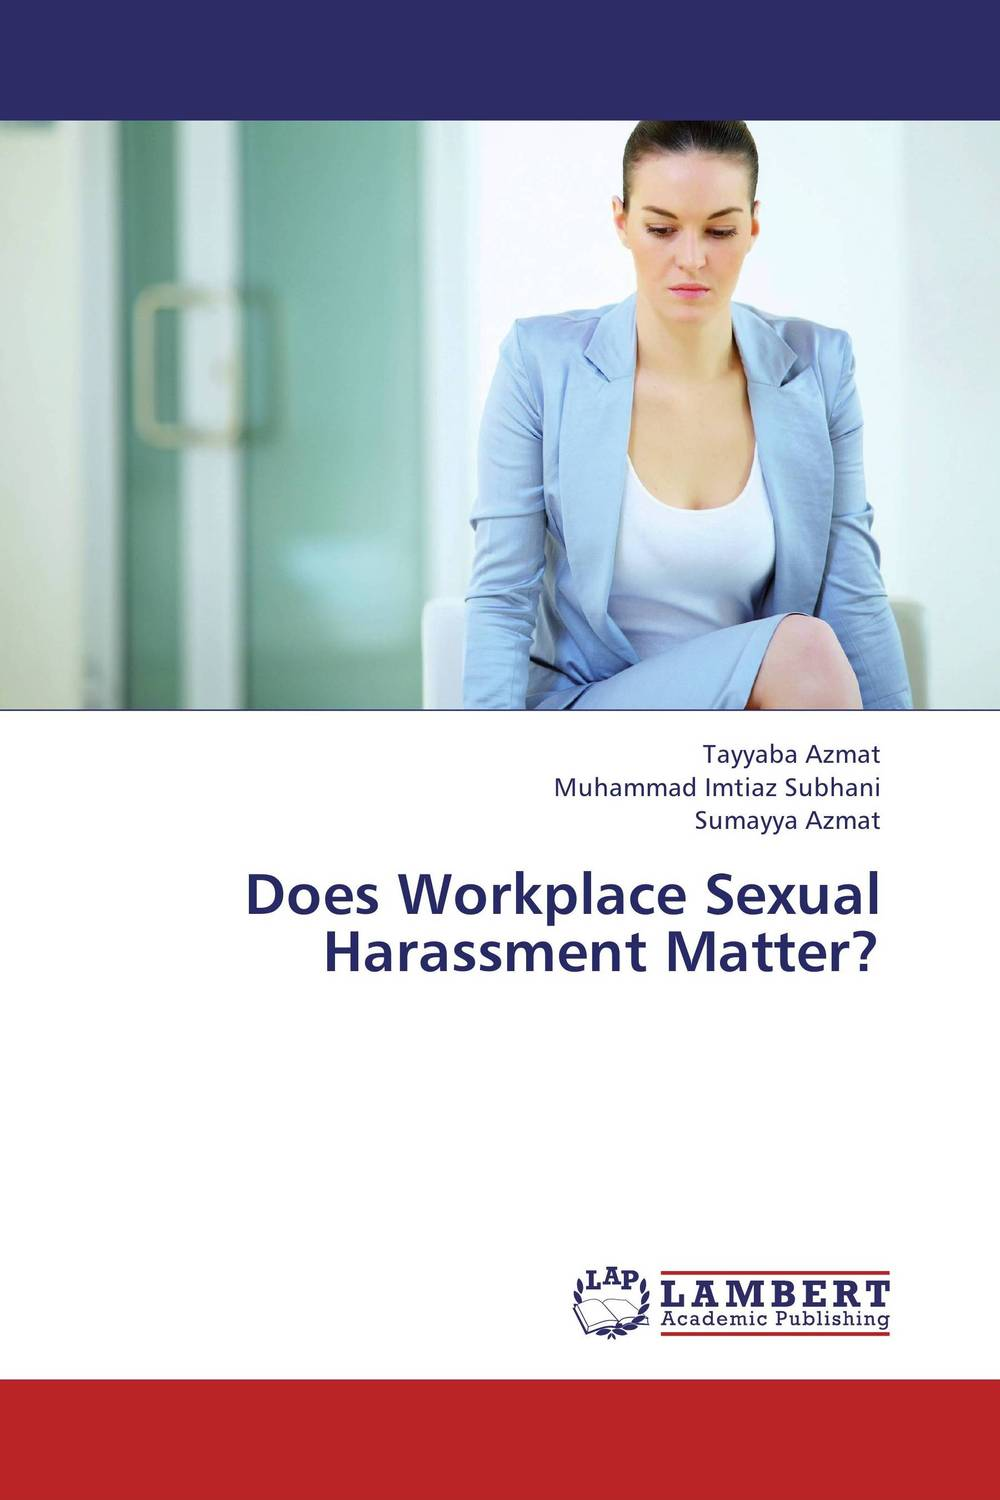 Does Workplace Sexual Harassment Matter? happiness at the workplace